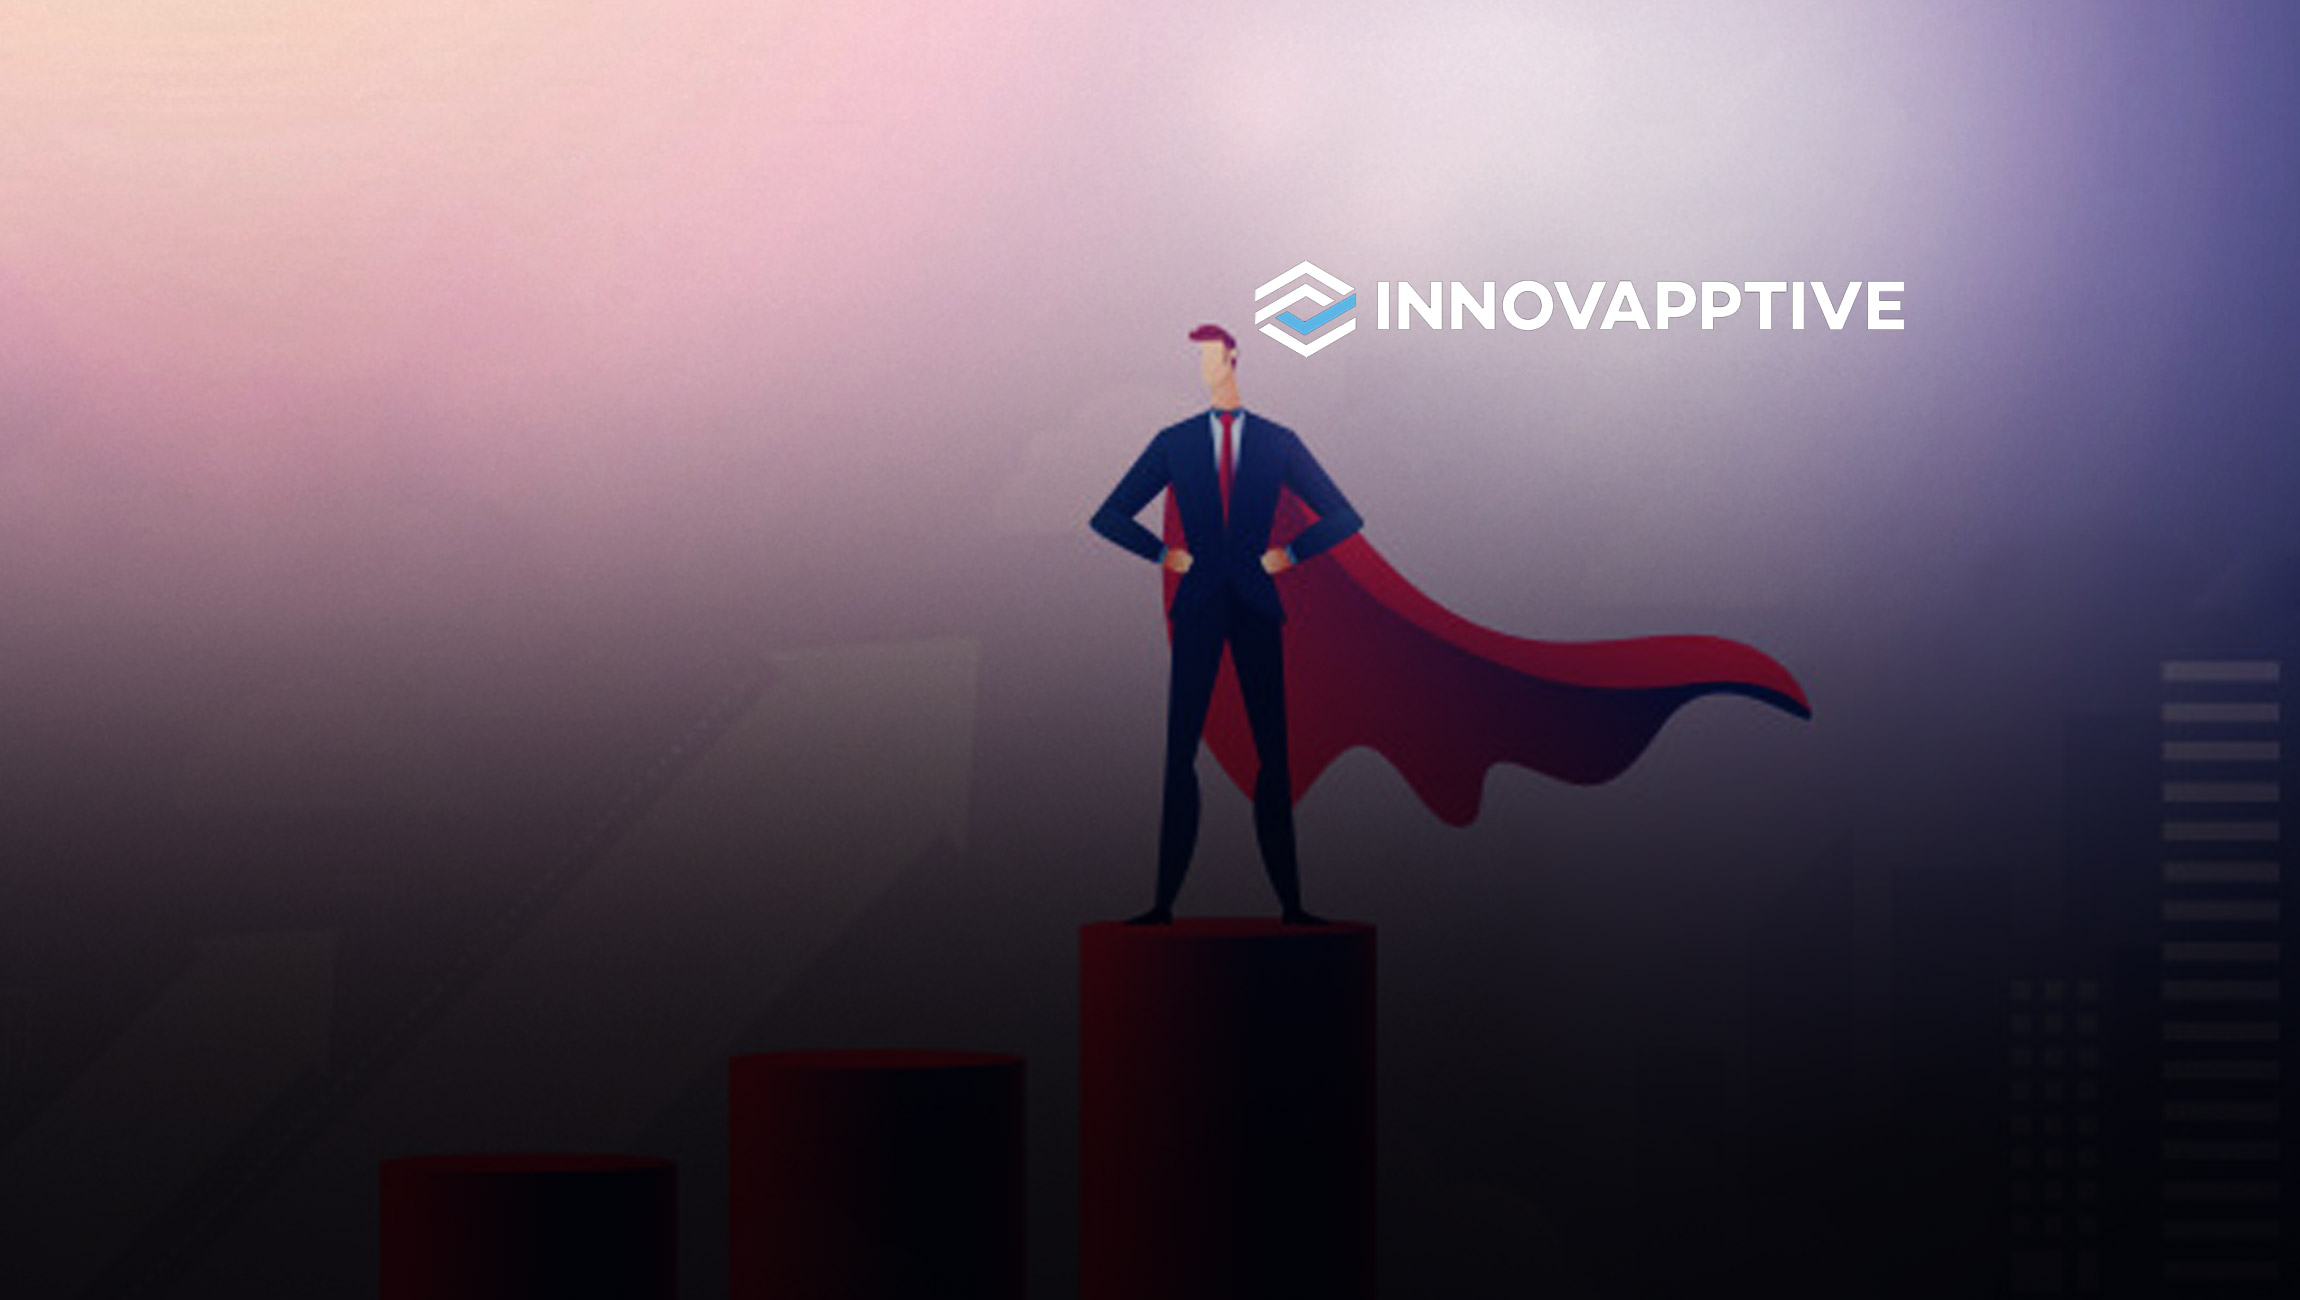 Innovapptive Board of Directors Brings Strong Tech Industry Knowledge and Leadership